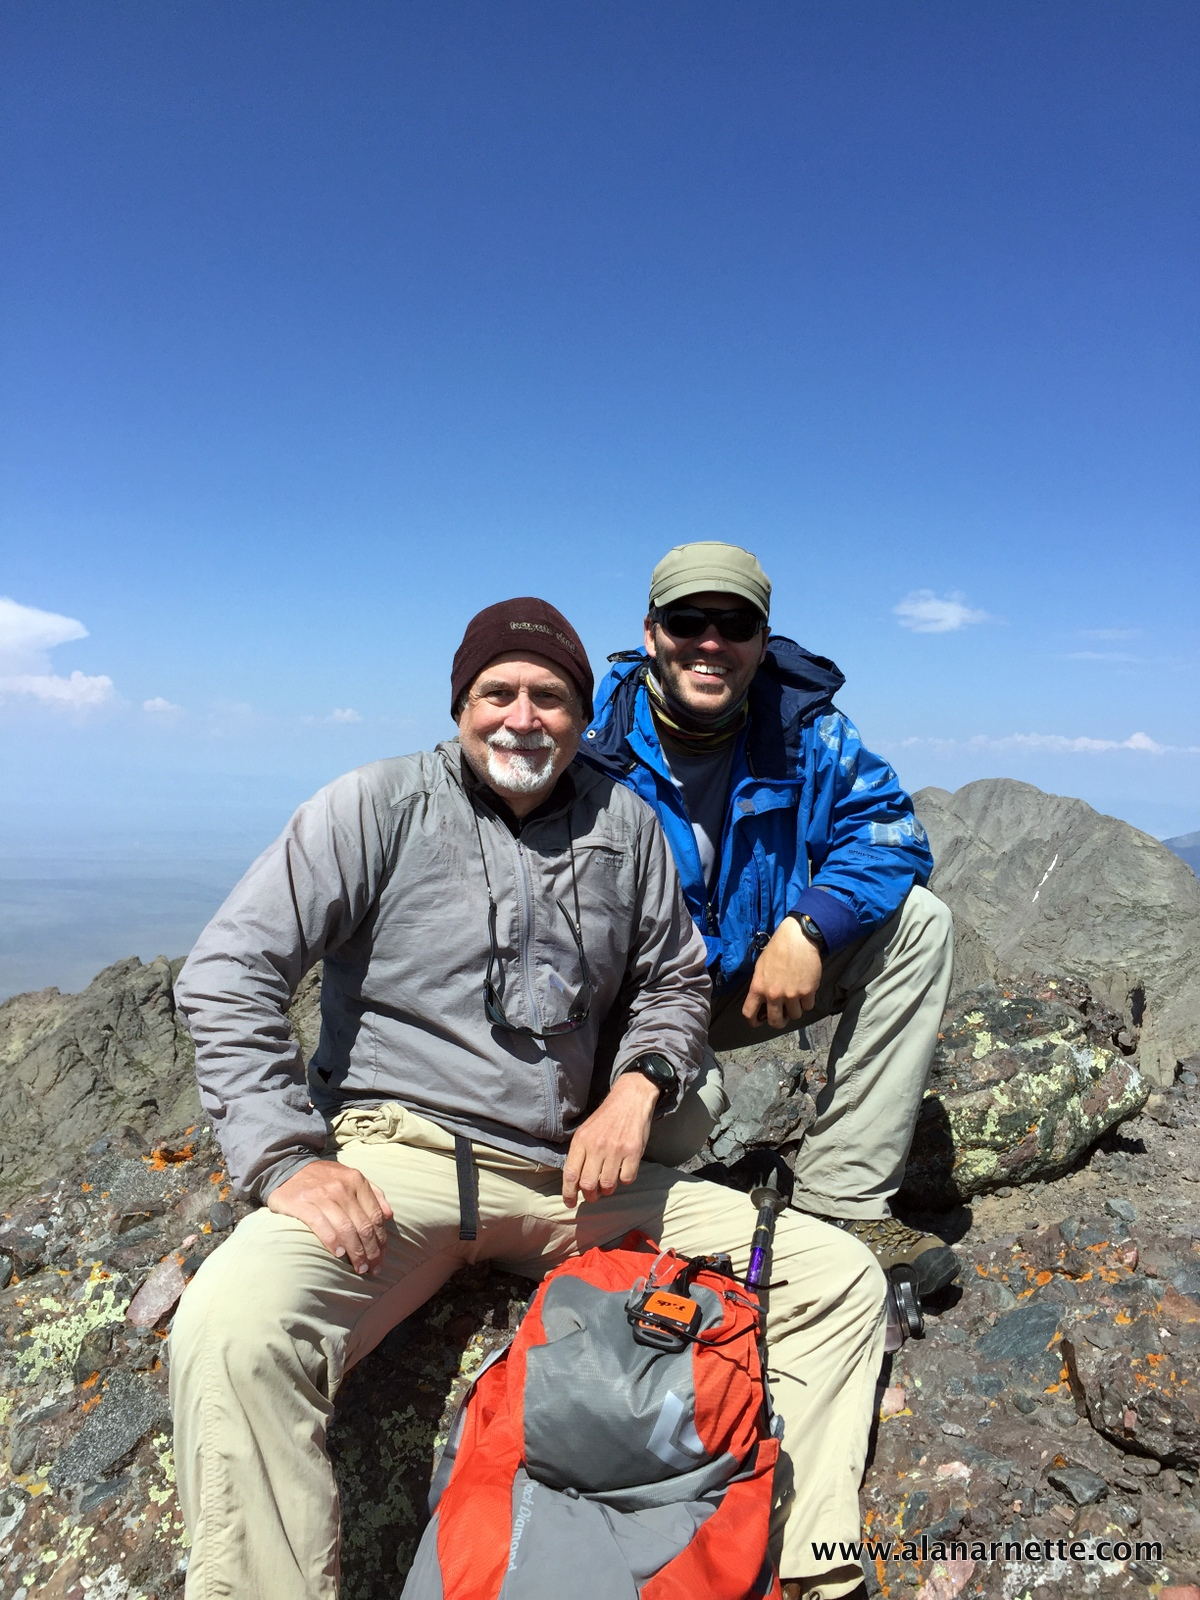 Alan and Andy on the summit of Crestone Needle